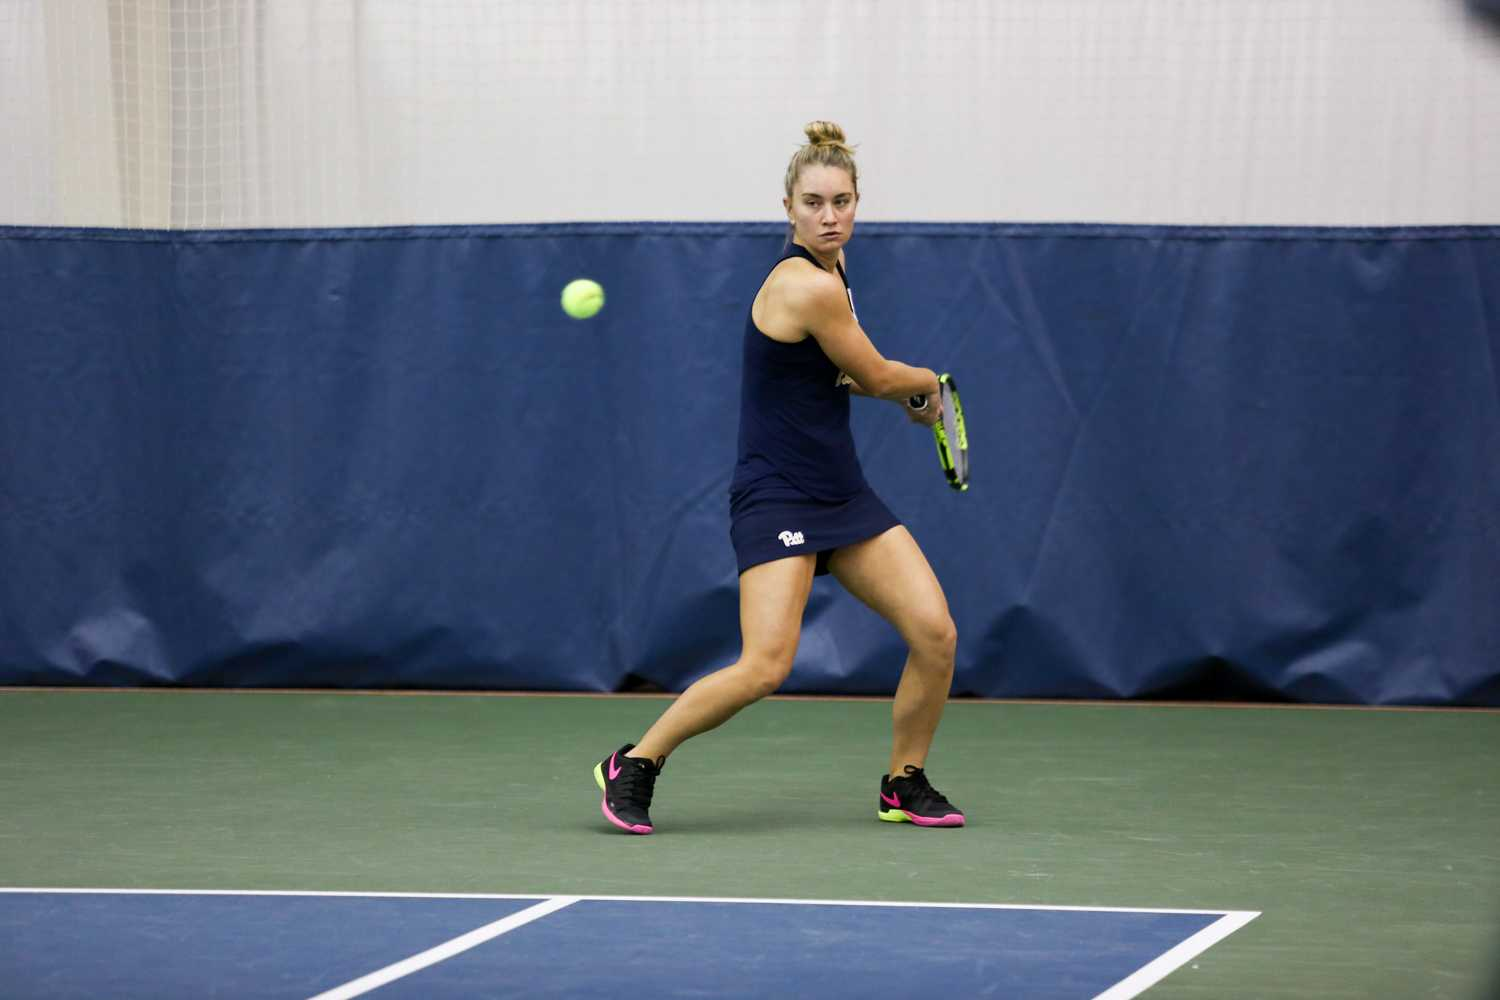 Senior Callie Frey is the only American-born player on Pitt's women's tennis team. (Photo courtesy of Pitt Athletics)